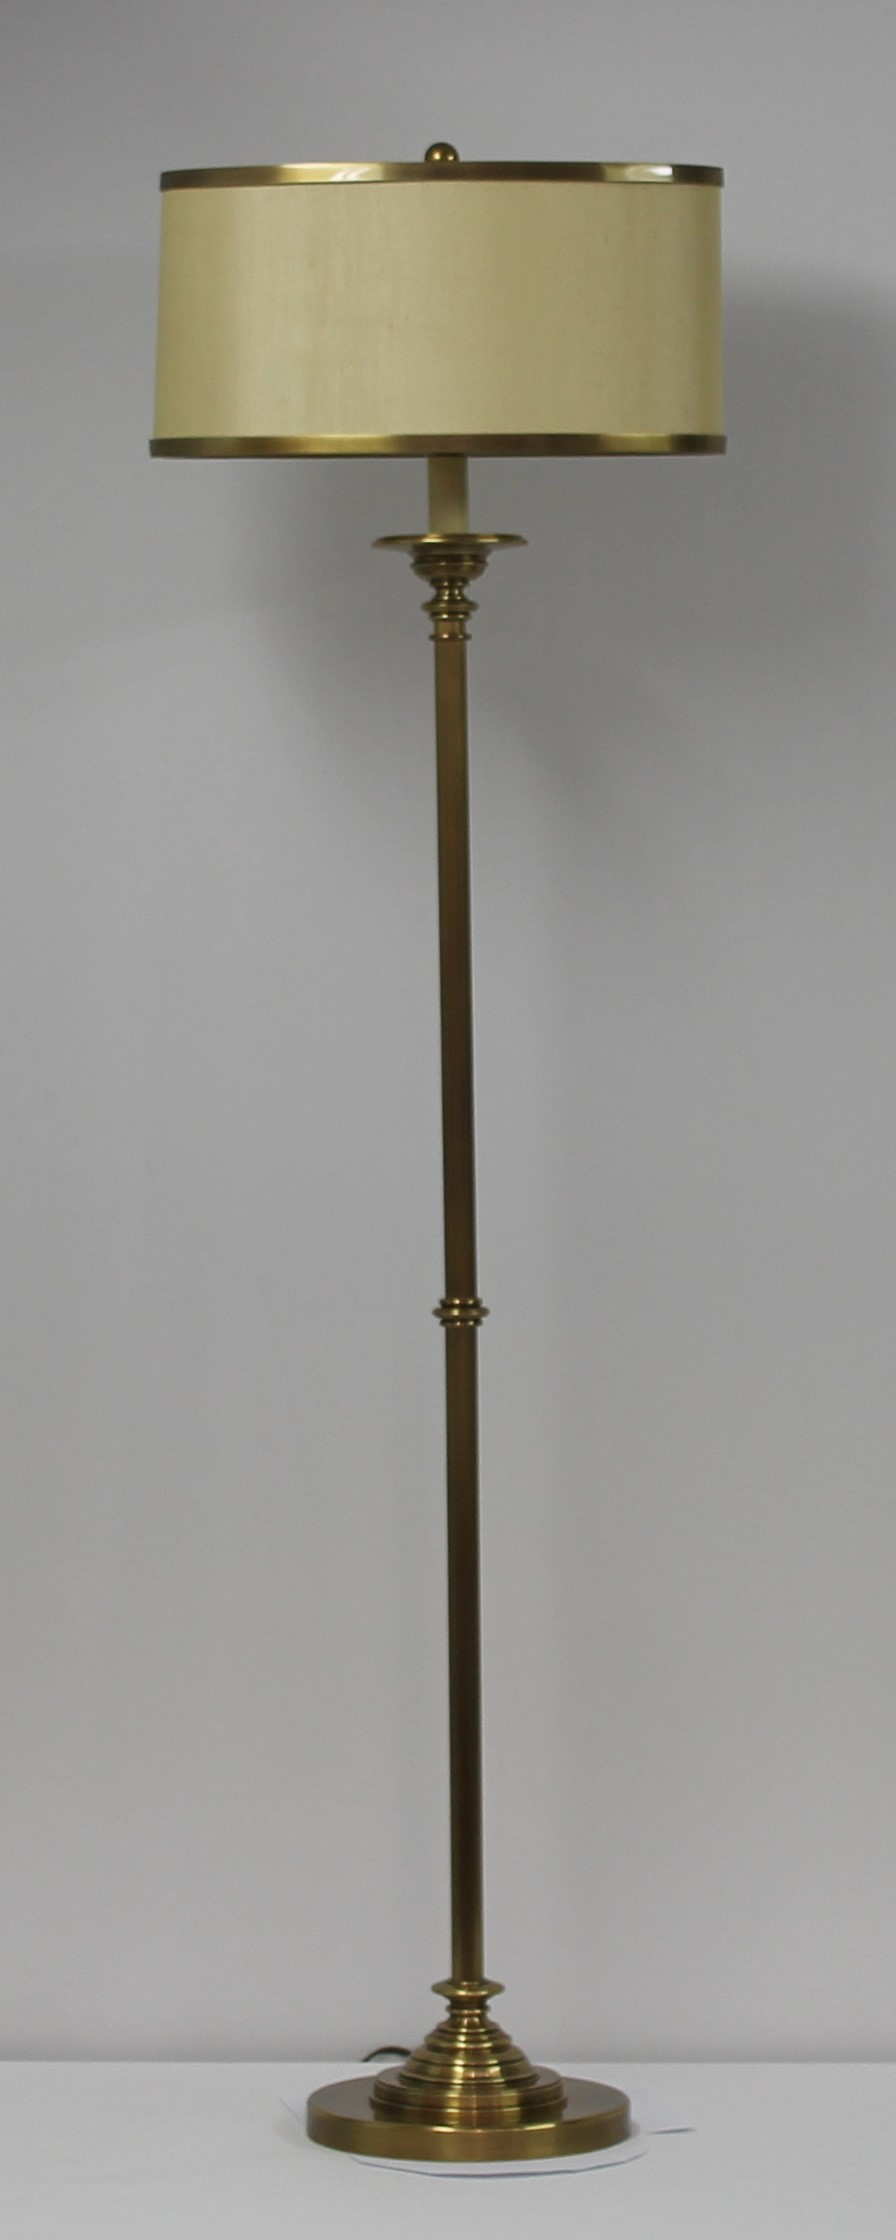 Cavendish Gold Floor Lamp With Shade Eunice Taylor Ltd